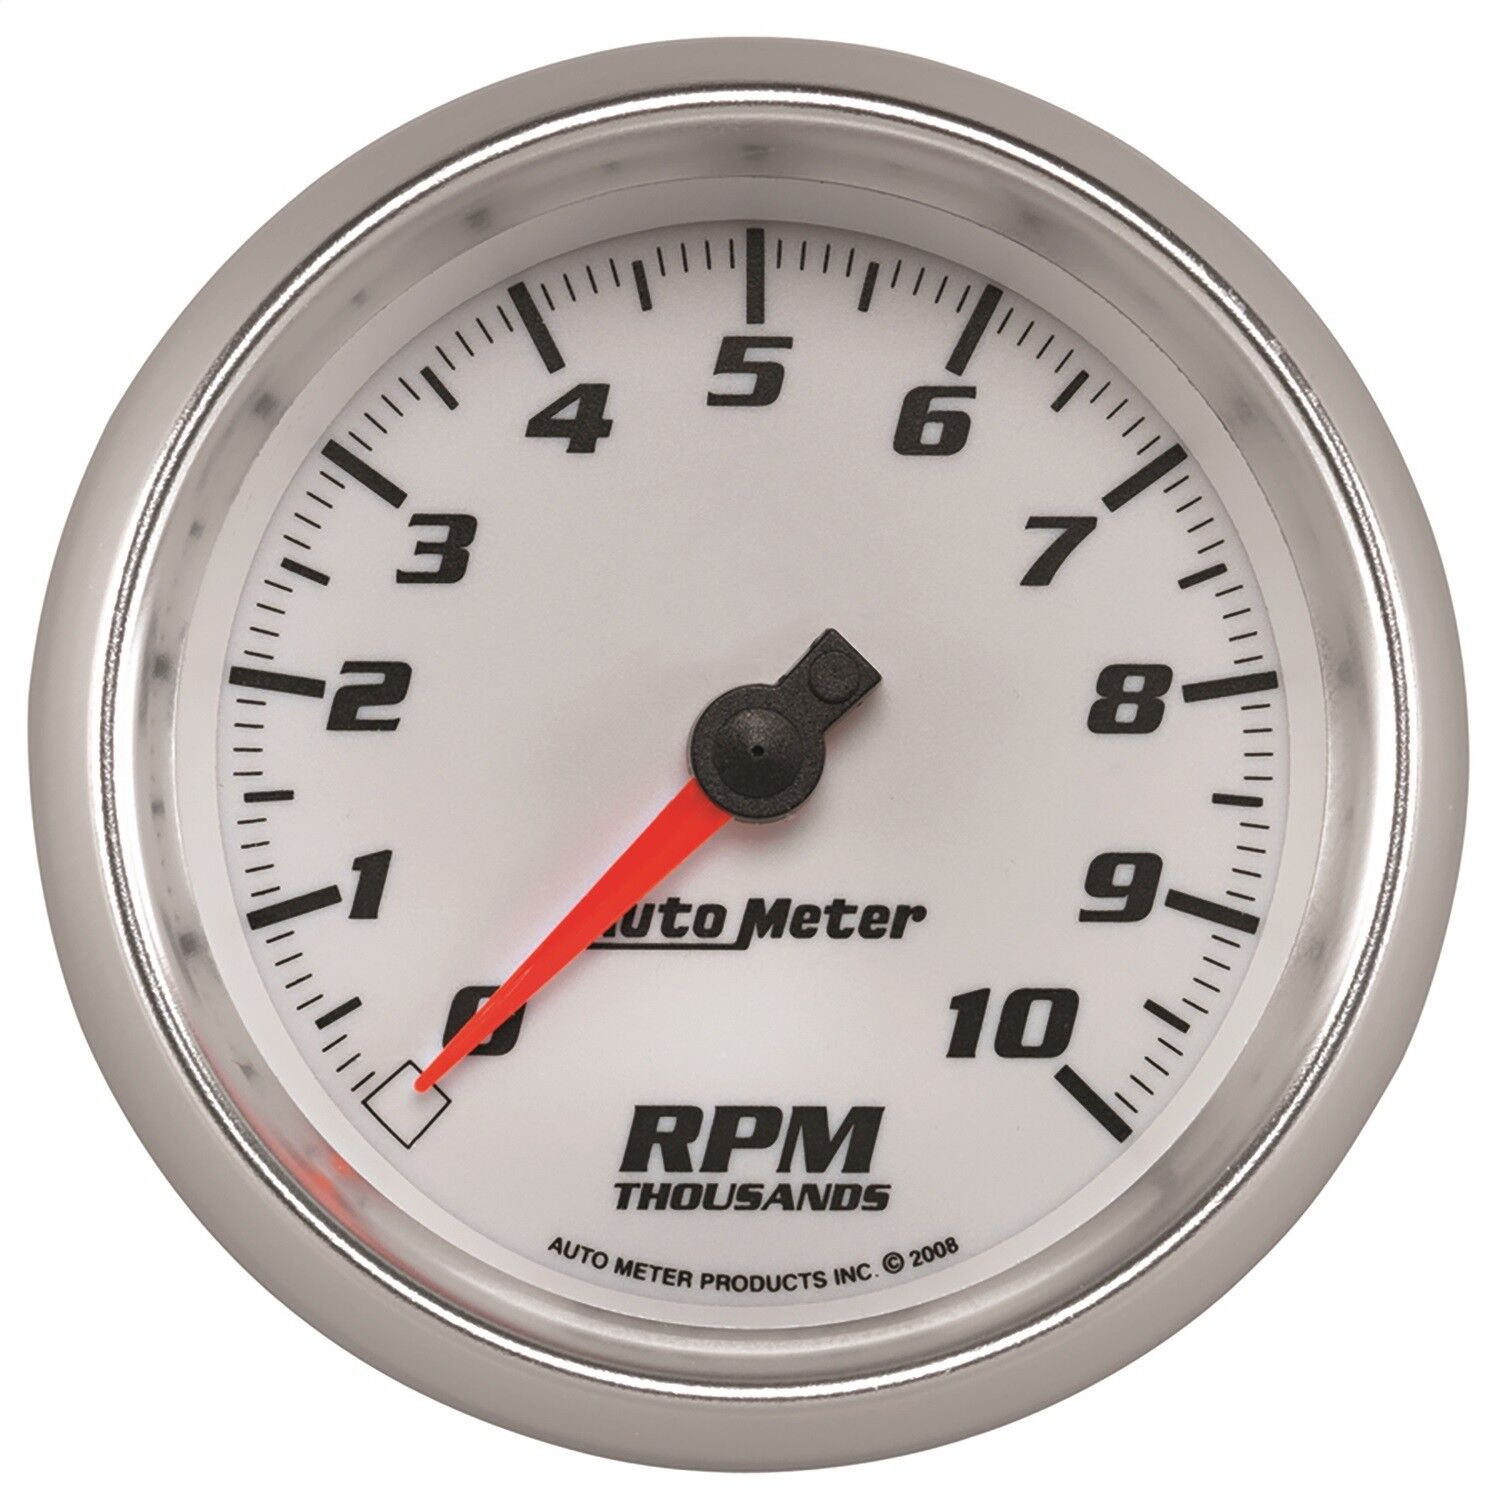 auto meter tach wiring pro cycle wiring library auto meter pro cycle tach wiring diagram pro cycle tach wiring #12